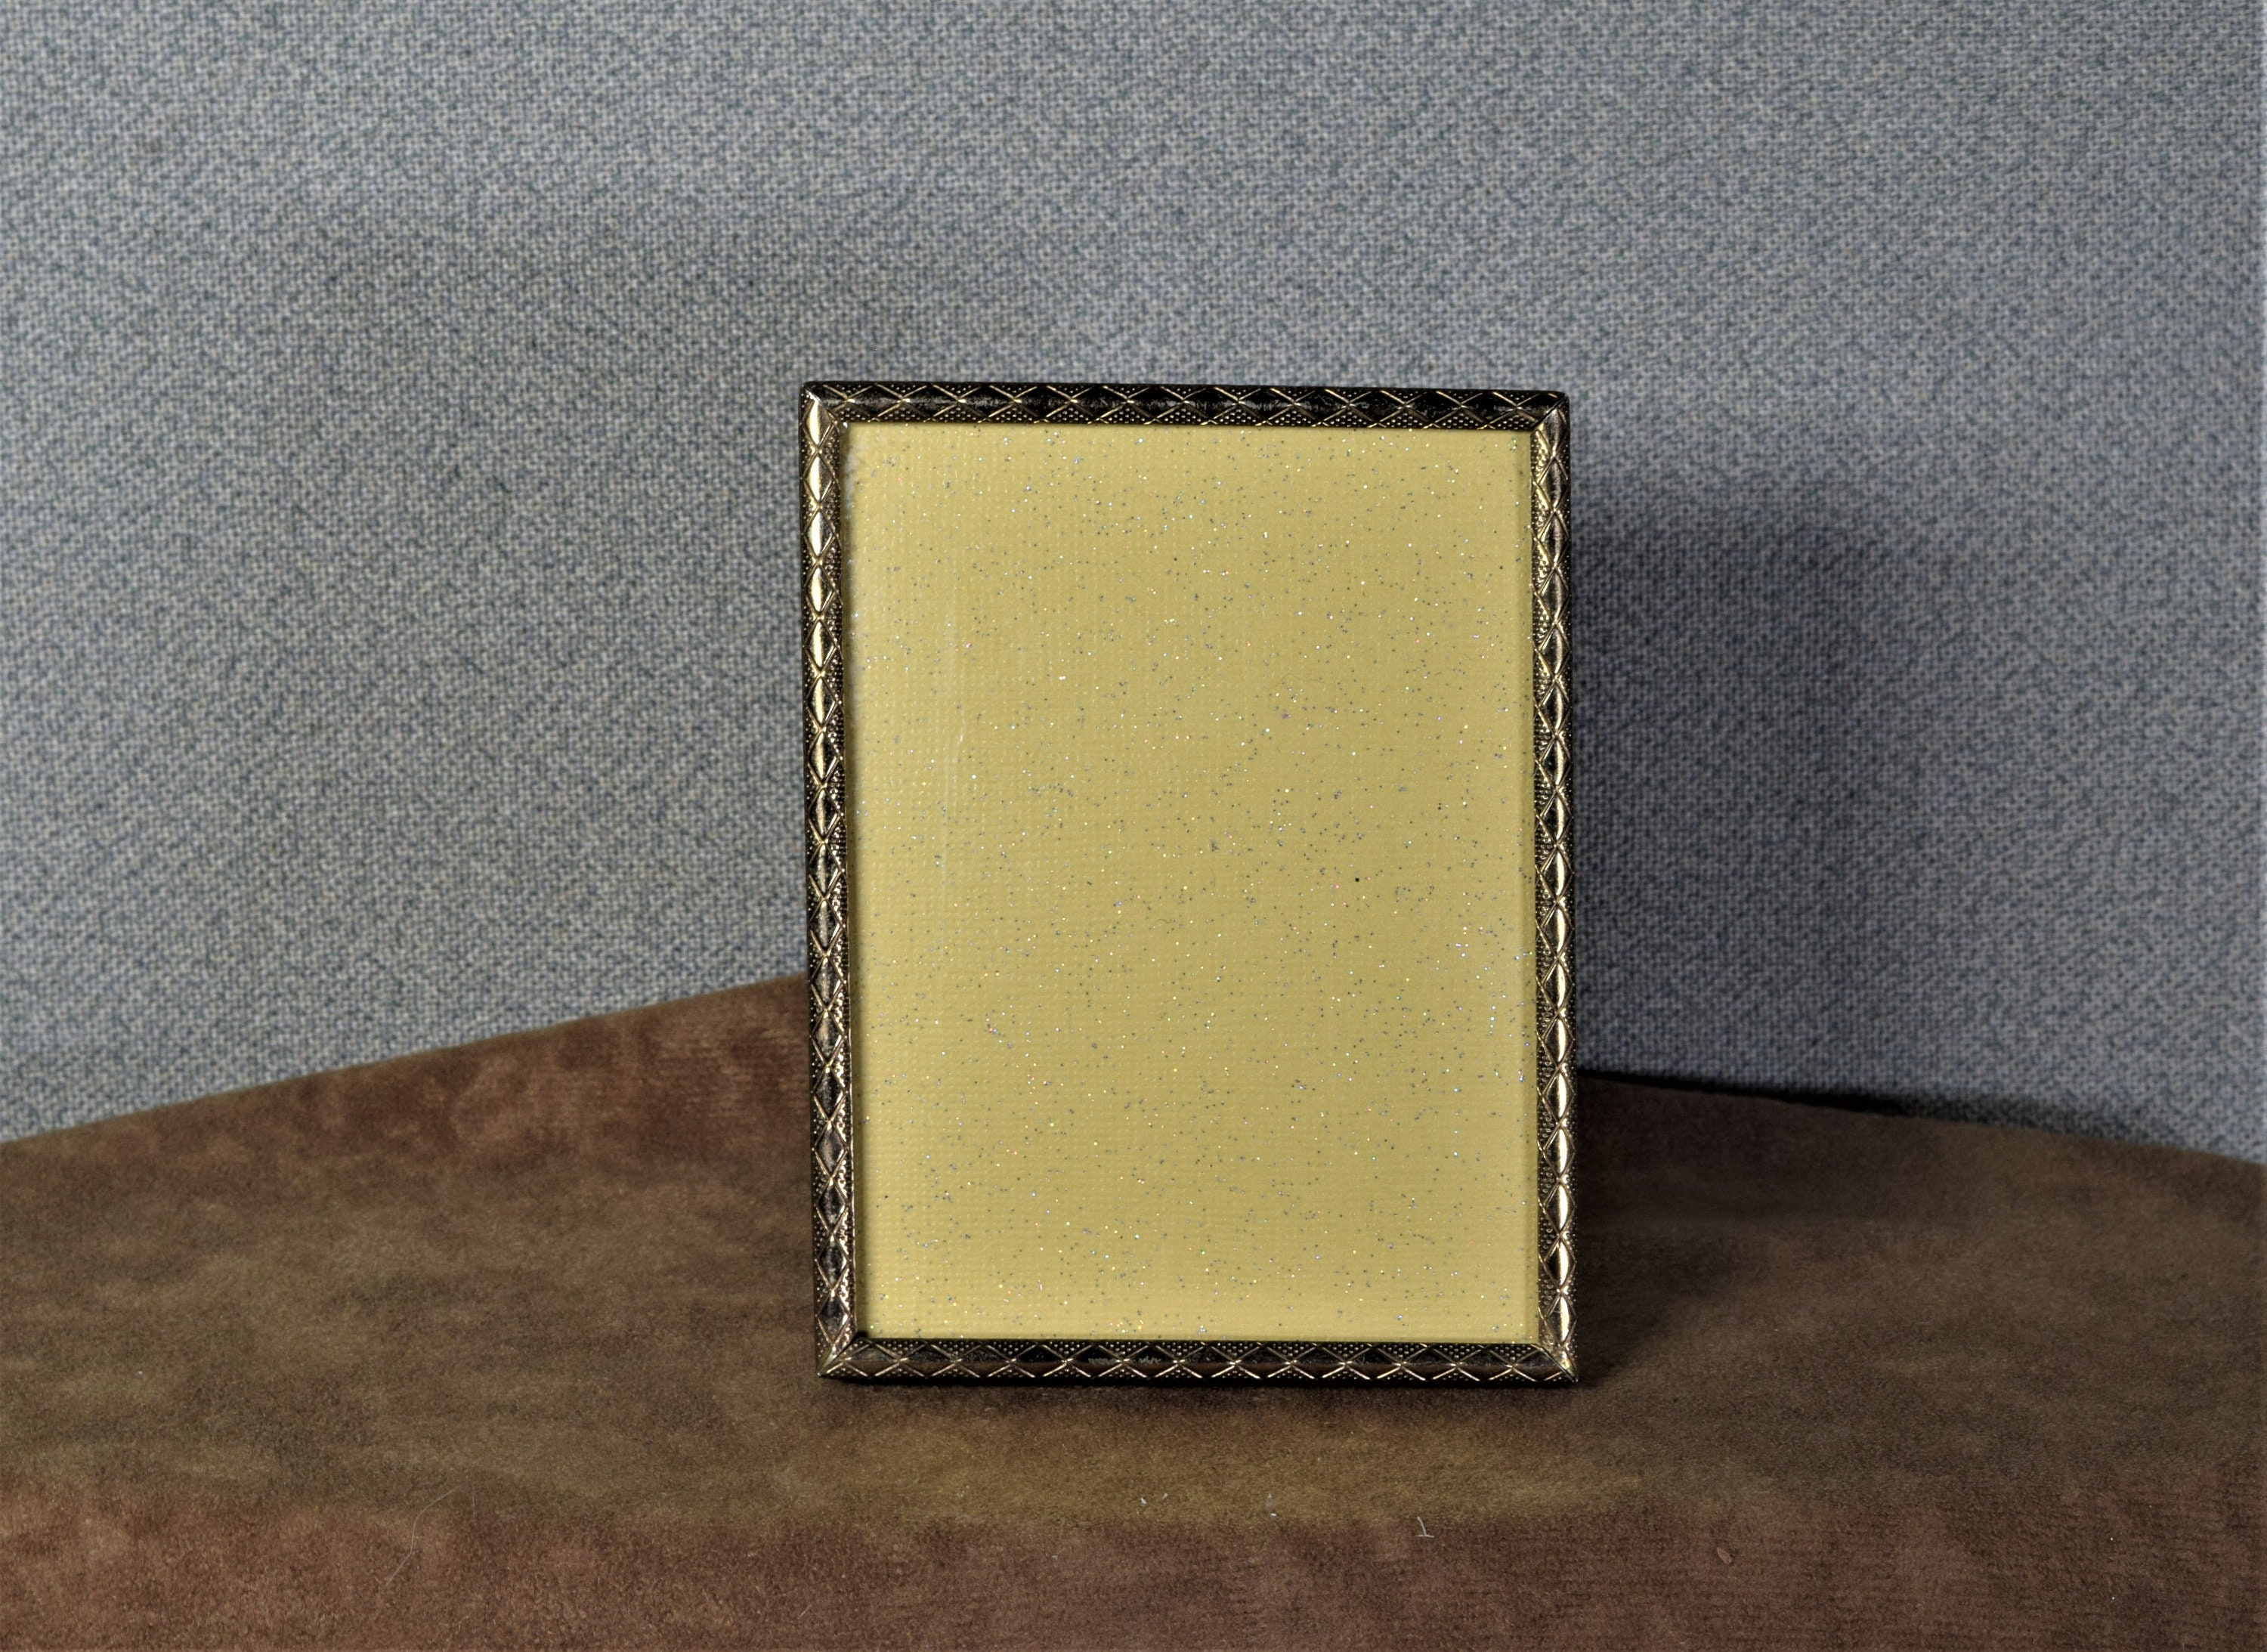 Outstanding 3x4 Picture Frame Image Collection - Picture Frame Ideas ...